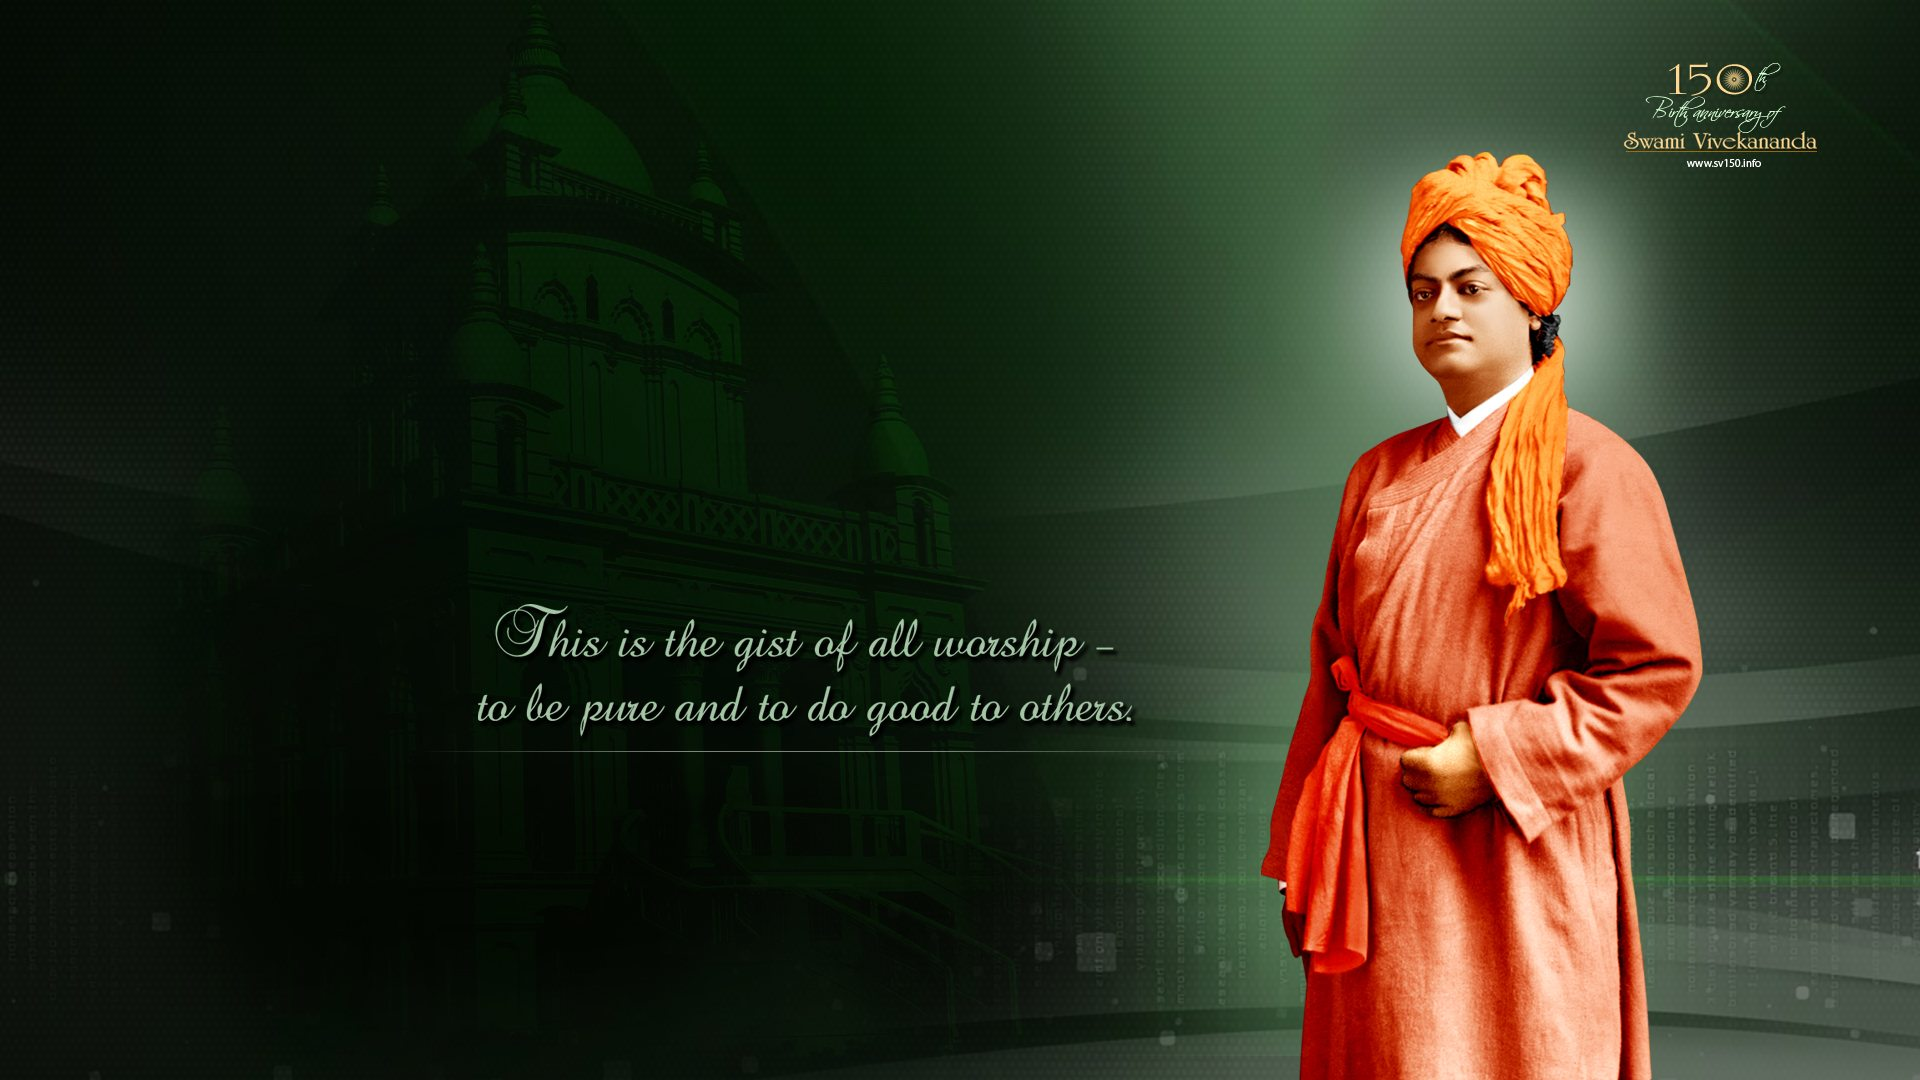 Swami Vivekananda Quotes Wallpapers HD Backgrounds Images Pics 1920x1080